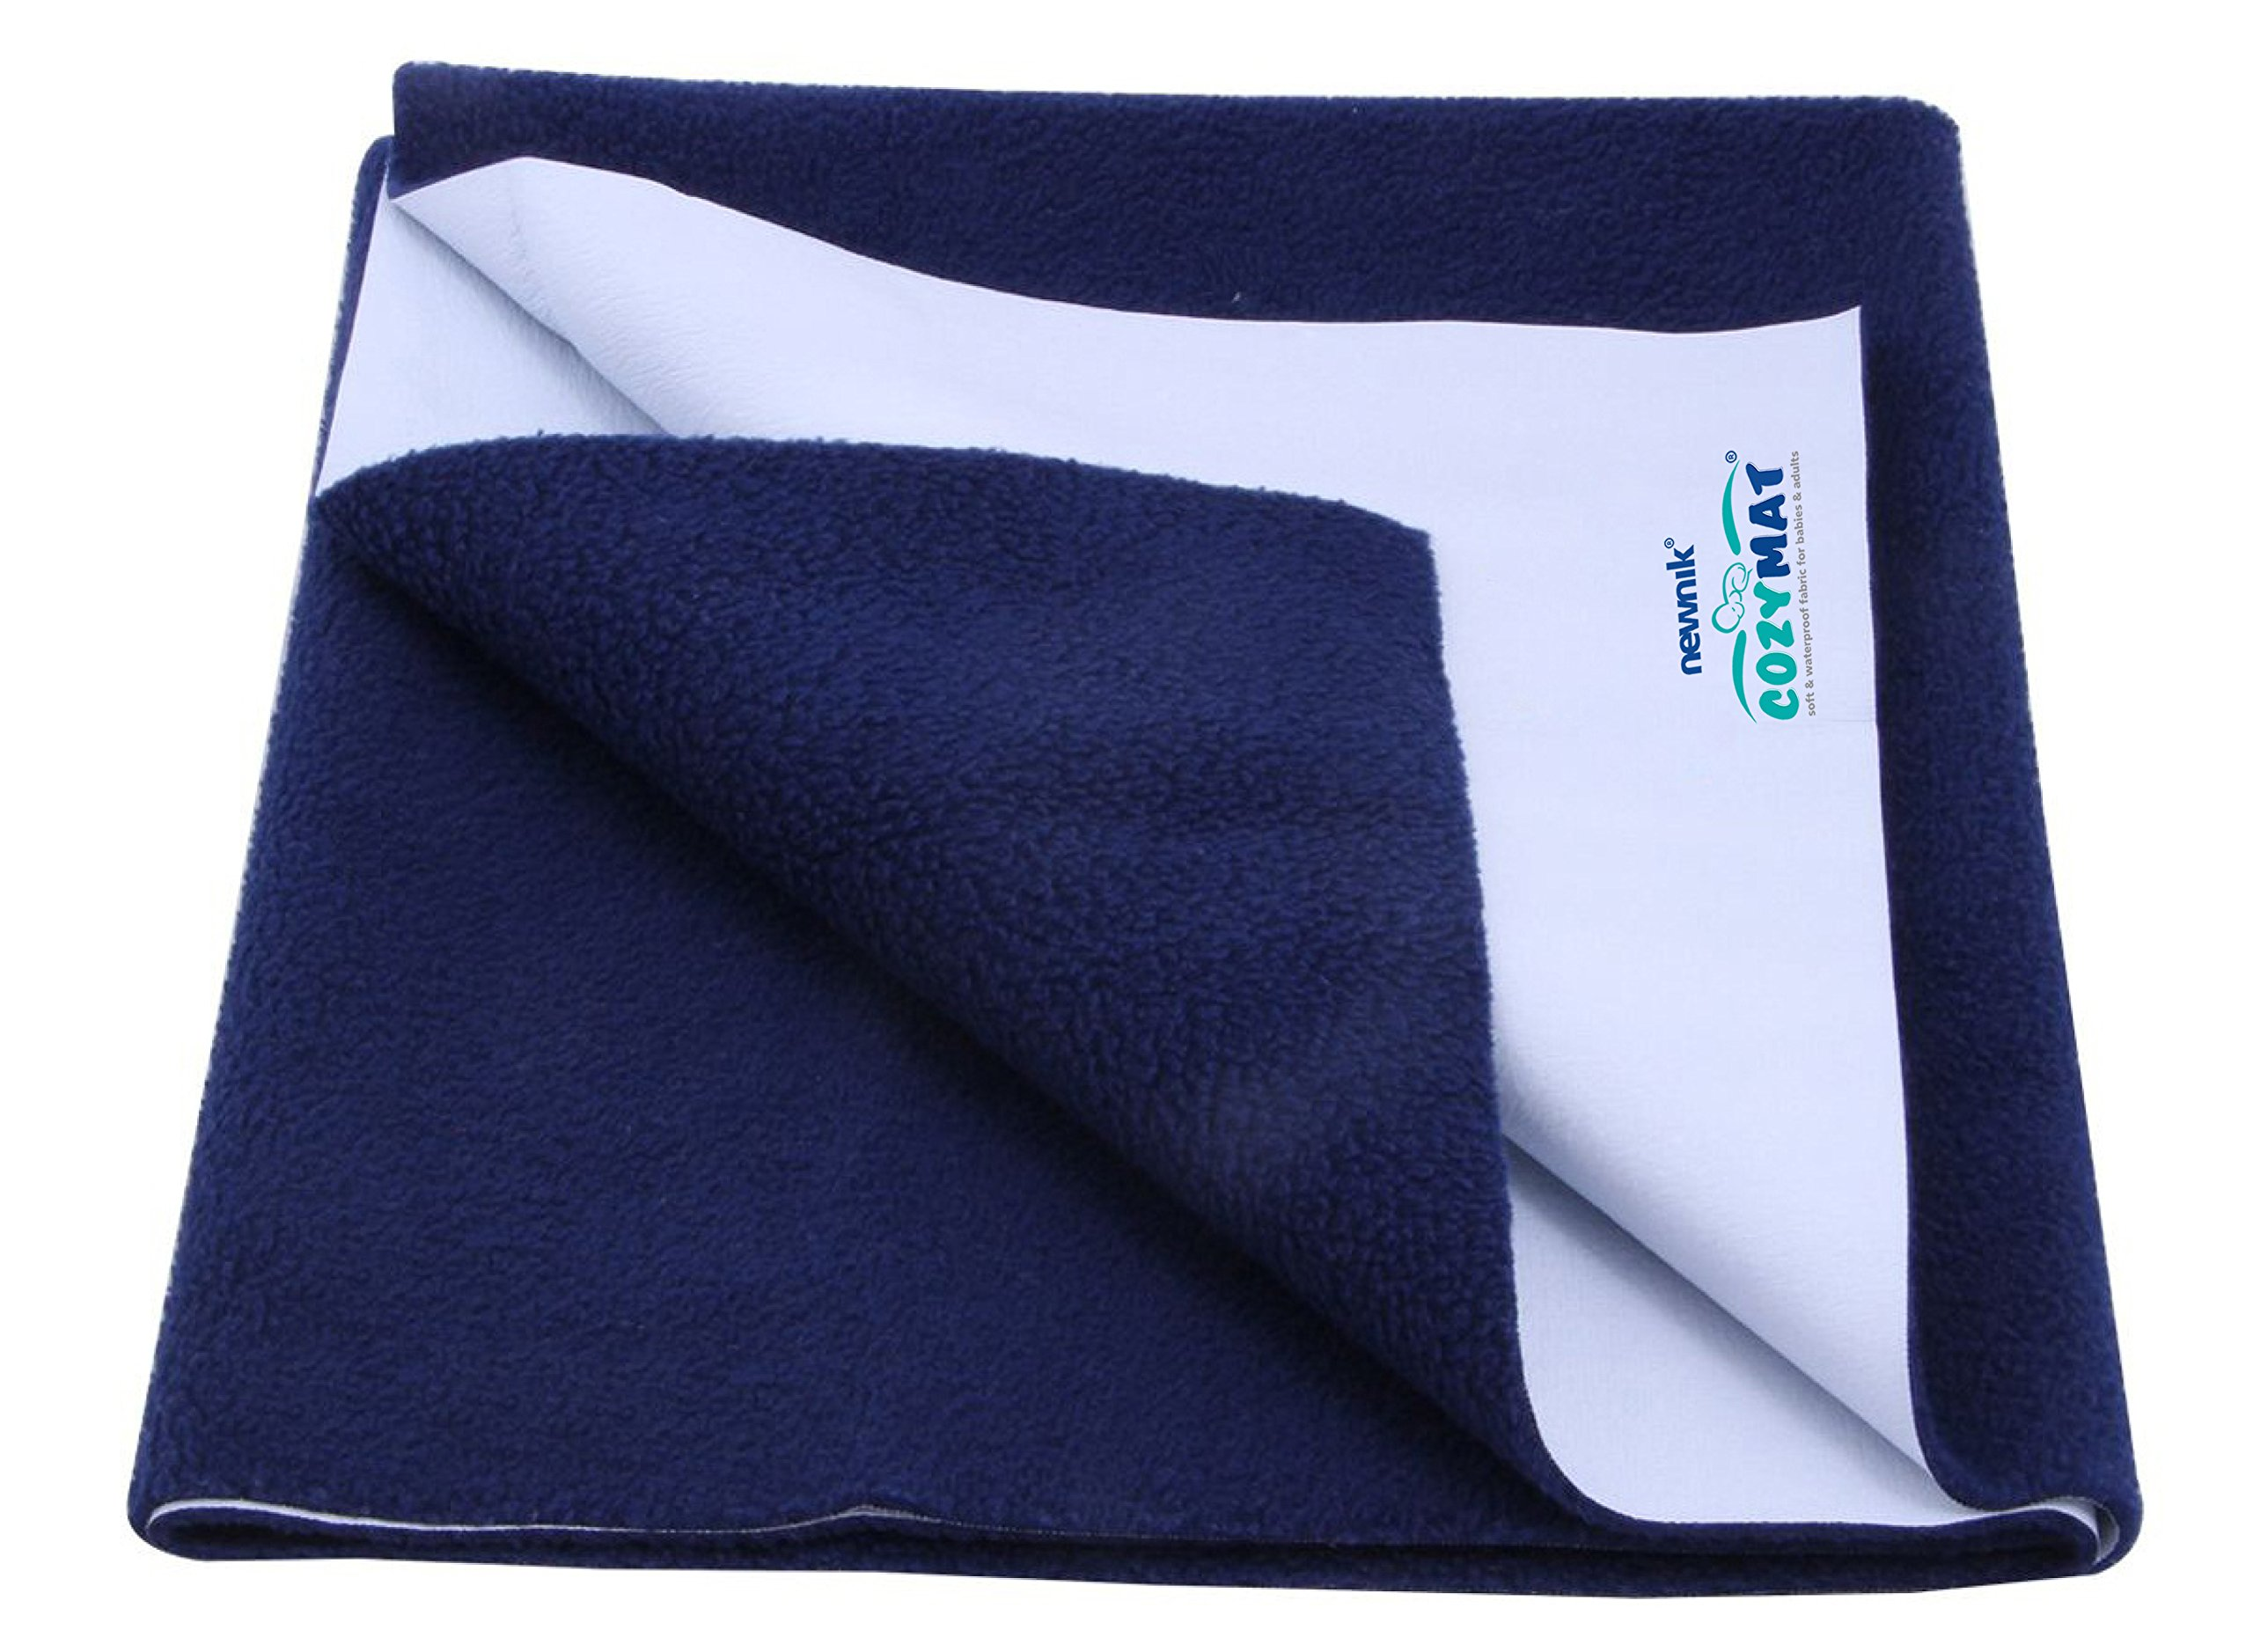 Cozymat Dry Sheet Waterproof Breathable Bed Protector (Size: 70cm X 100cm) Navy Blue, Medium by cozymat